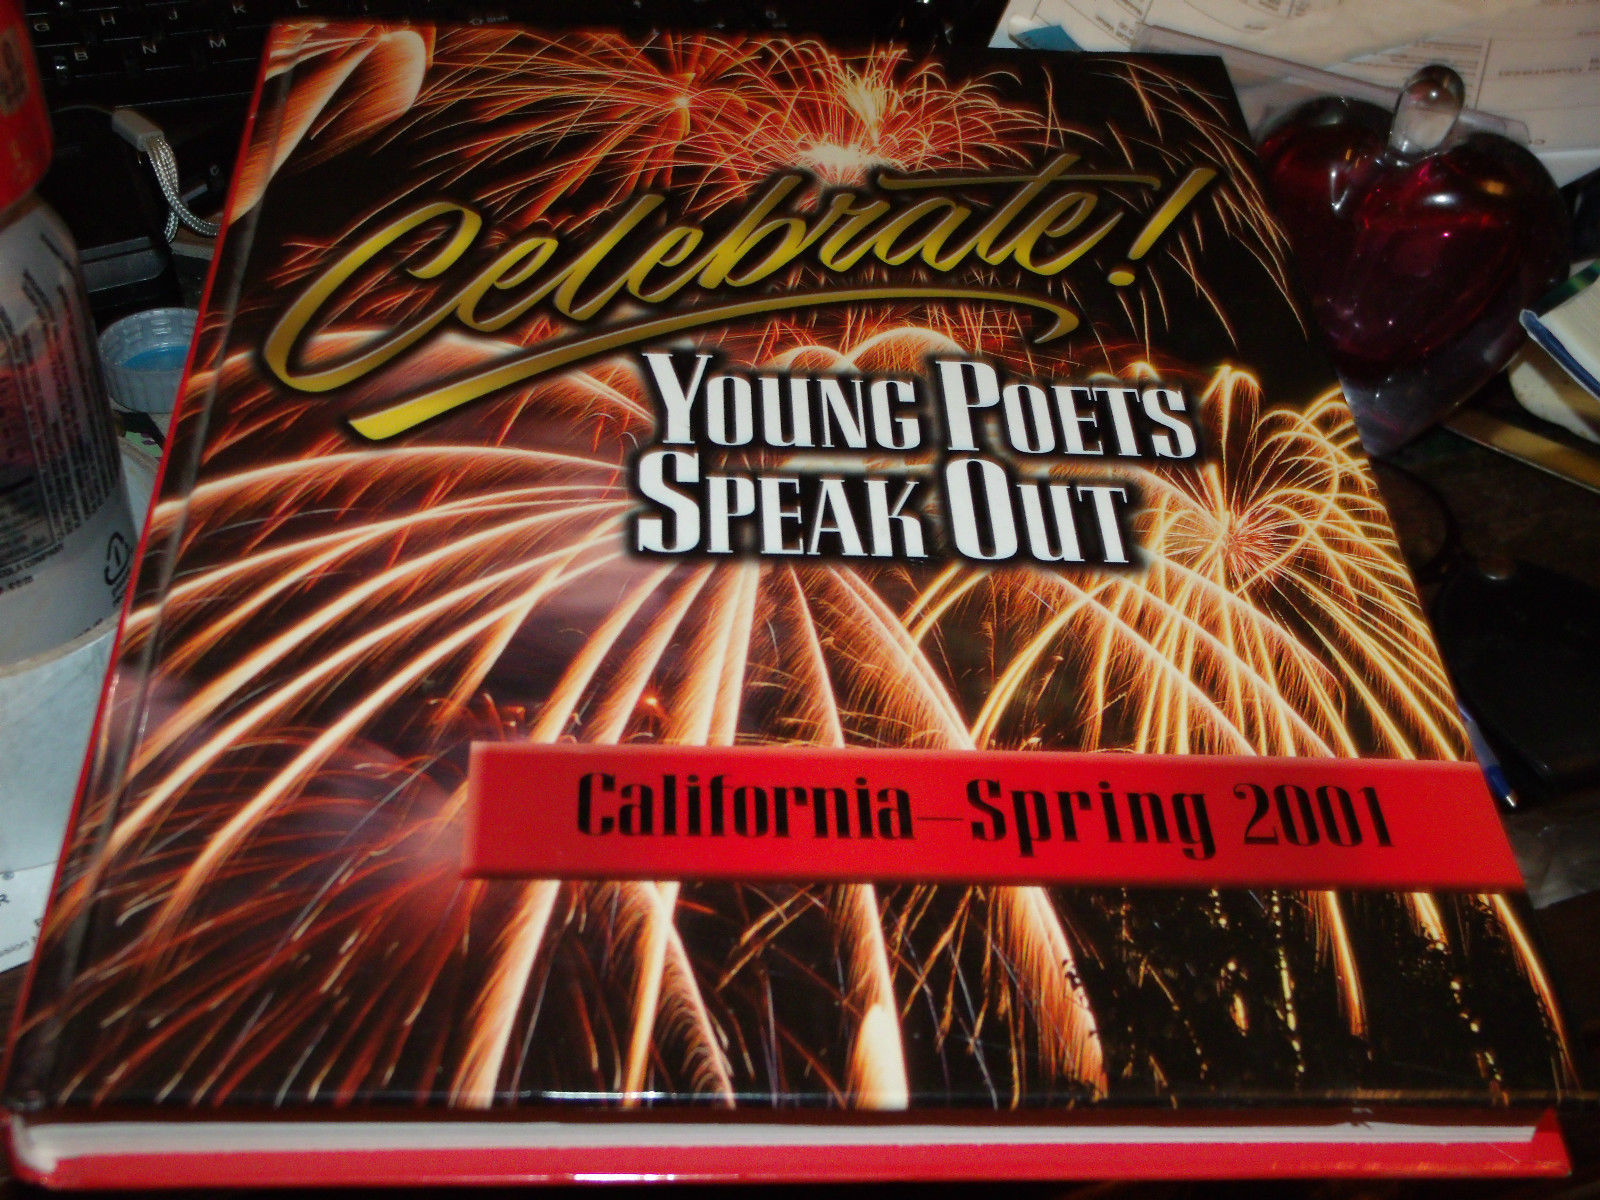 CELEBRATE 2001 YOUNG POETS SPEAK OUT BOOK SIGNED BY NICOLE GLASS